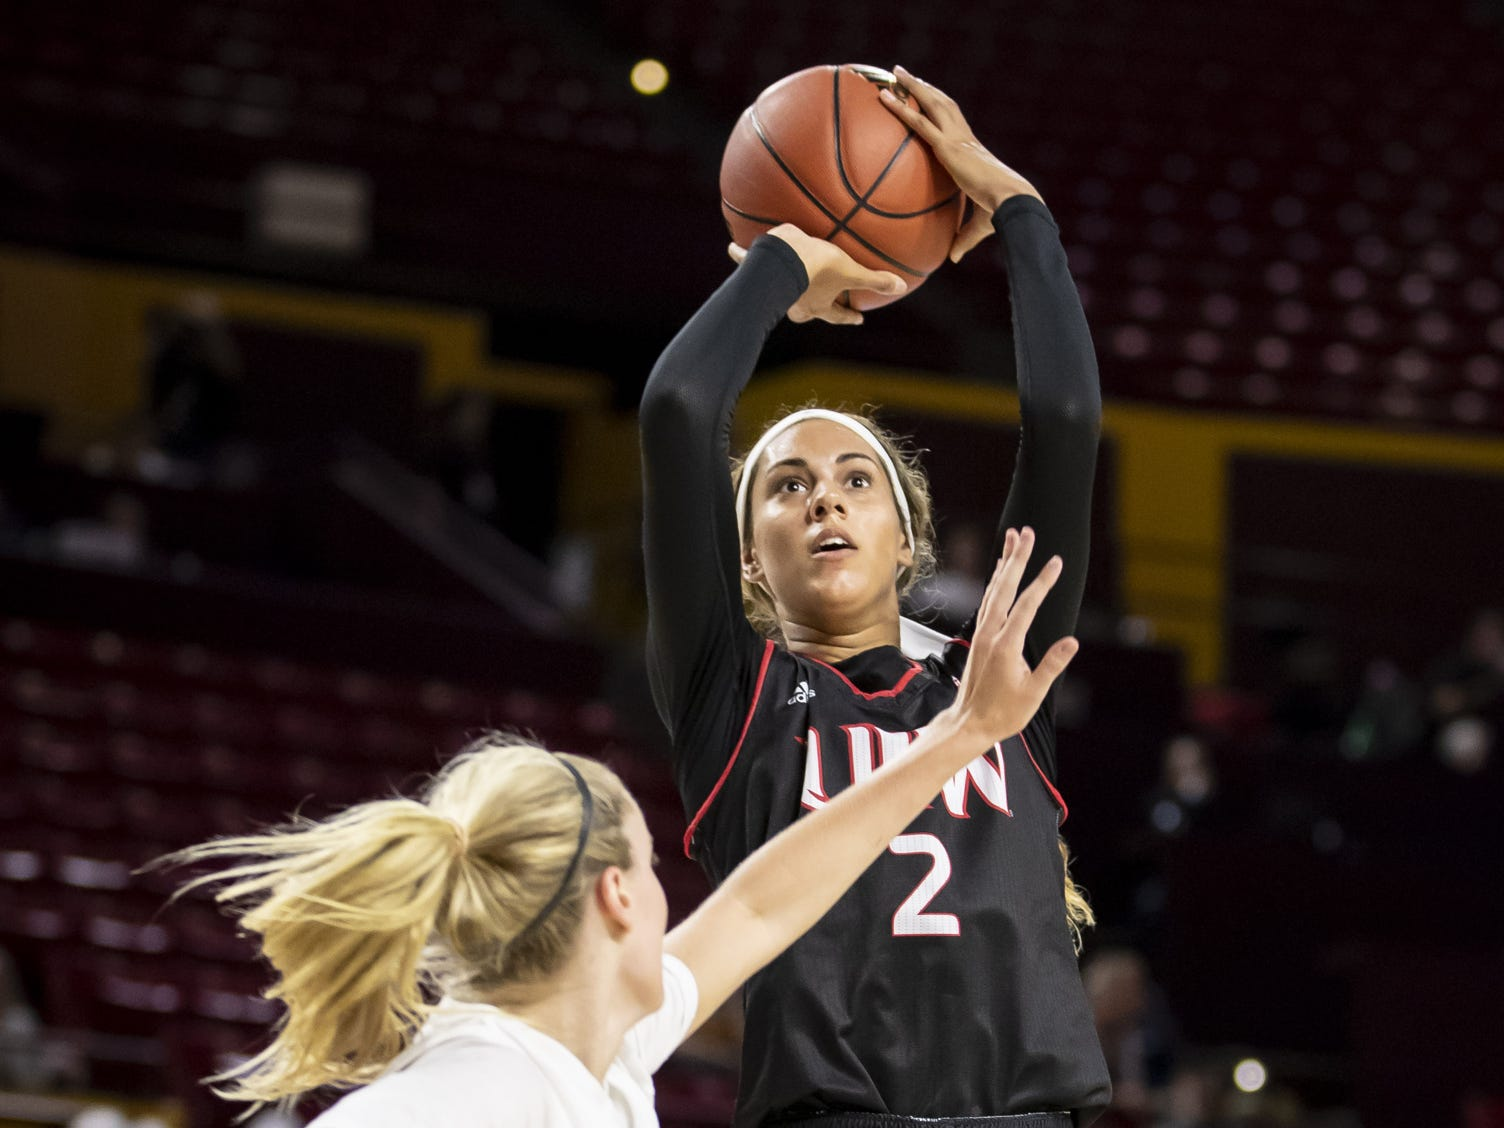 Forward Lunden Henry (2) of the Incarnate Word Cardinals shoots the ball against the Arizona State Sun Devils at Wells Fargo Arena on Tuesday, November 6, 2018 in Tempe, Arizona.